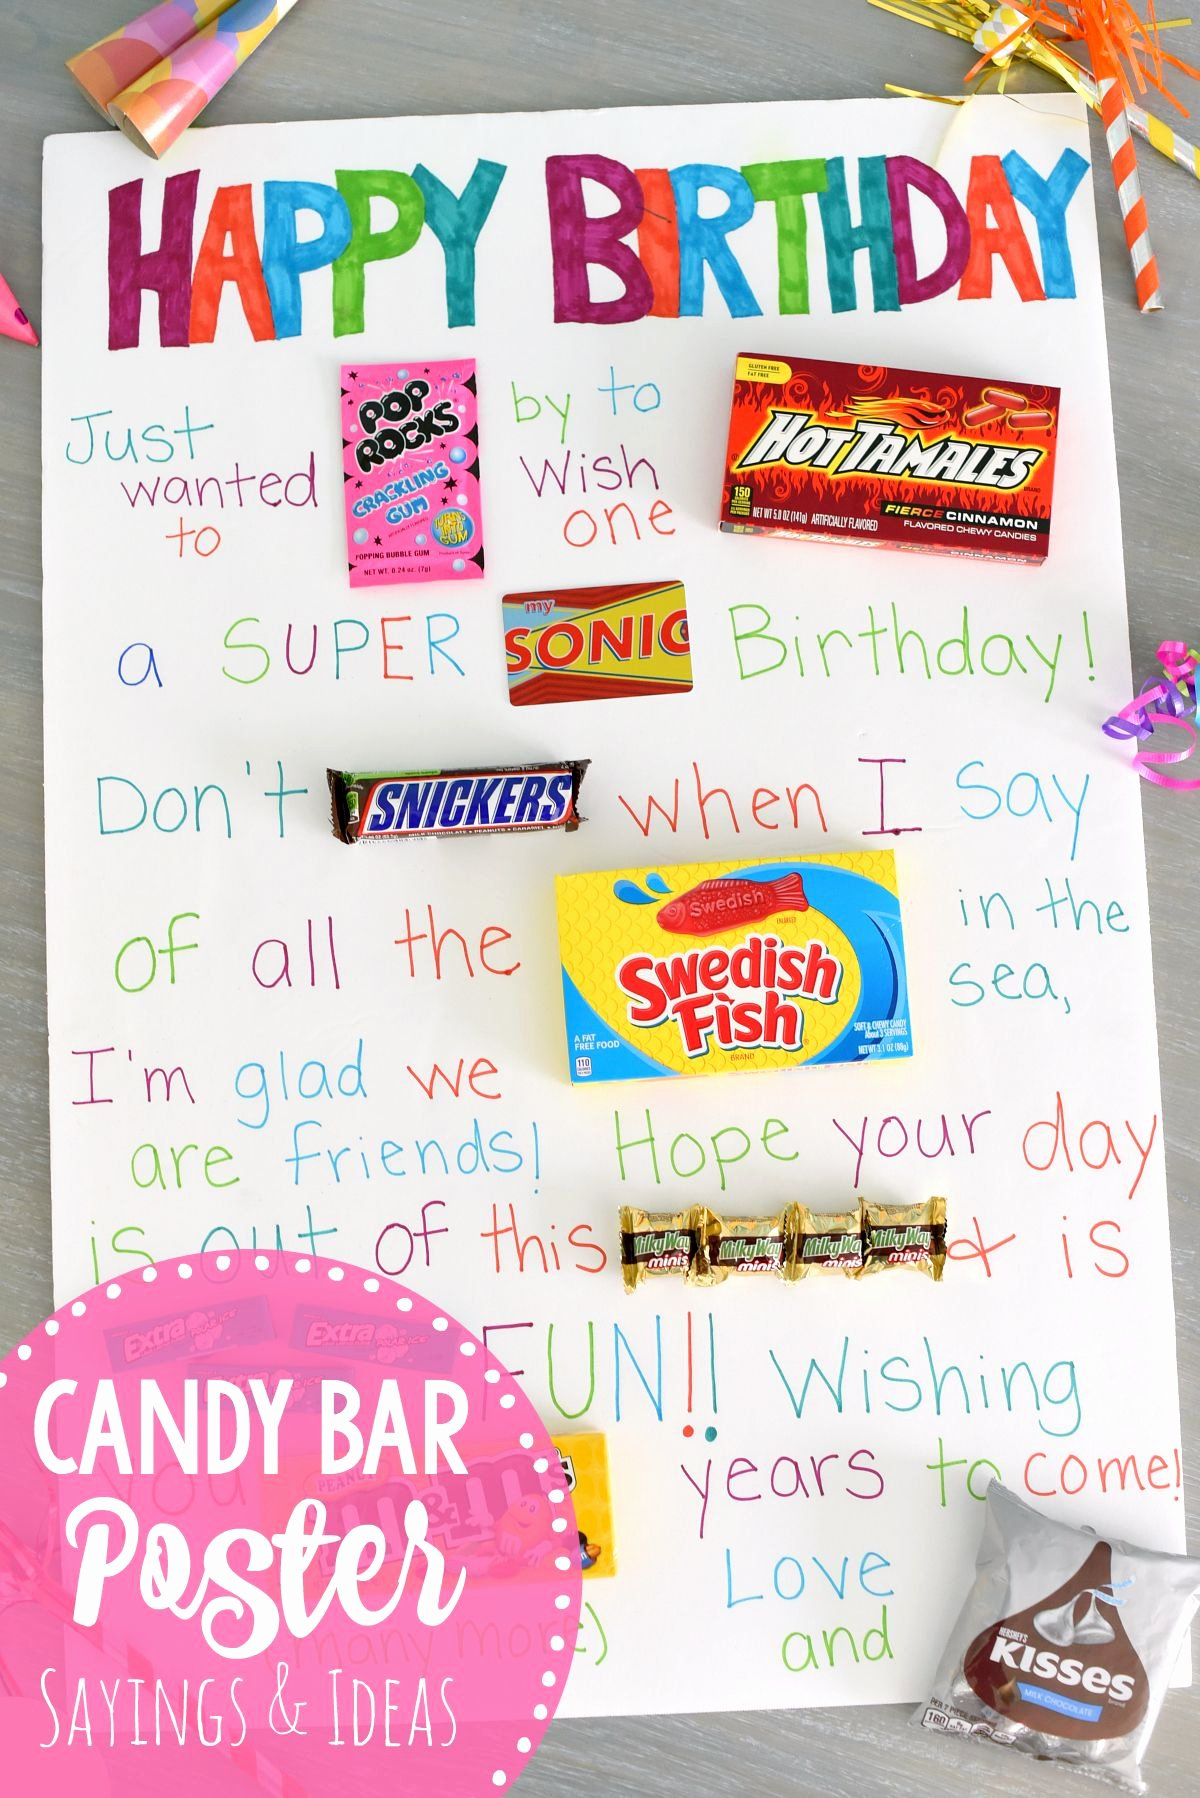 Happy Birthday to Me Poster New Fun & Simple Candy Poster for Friend S Birthday